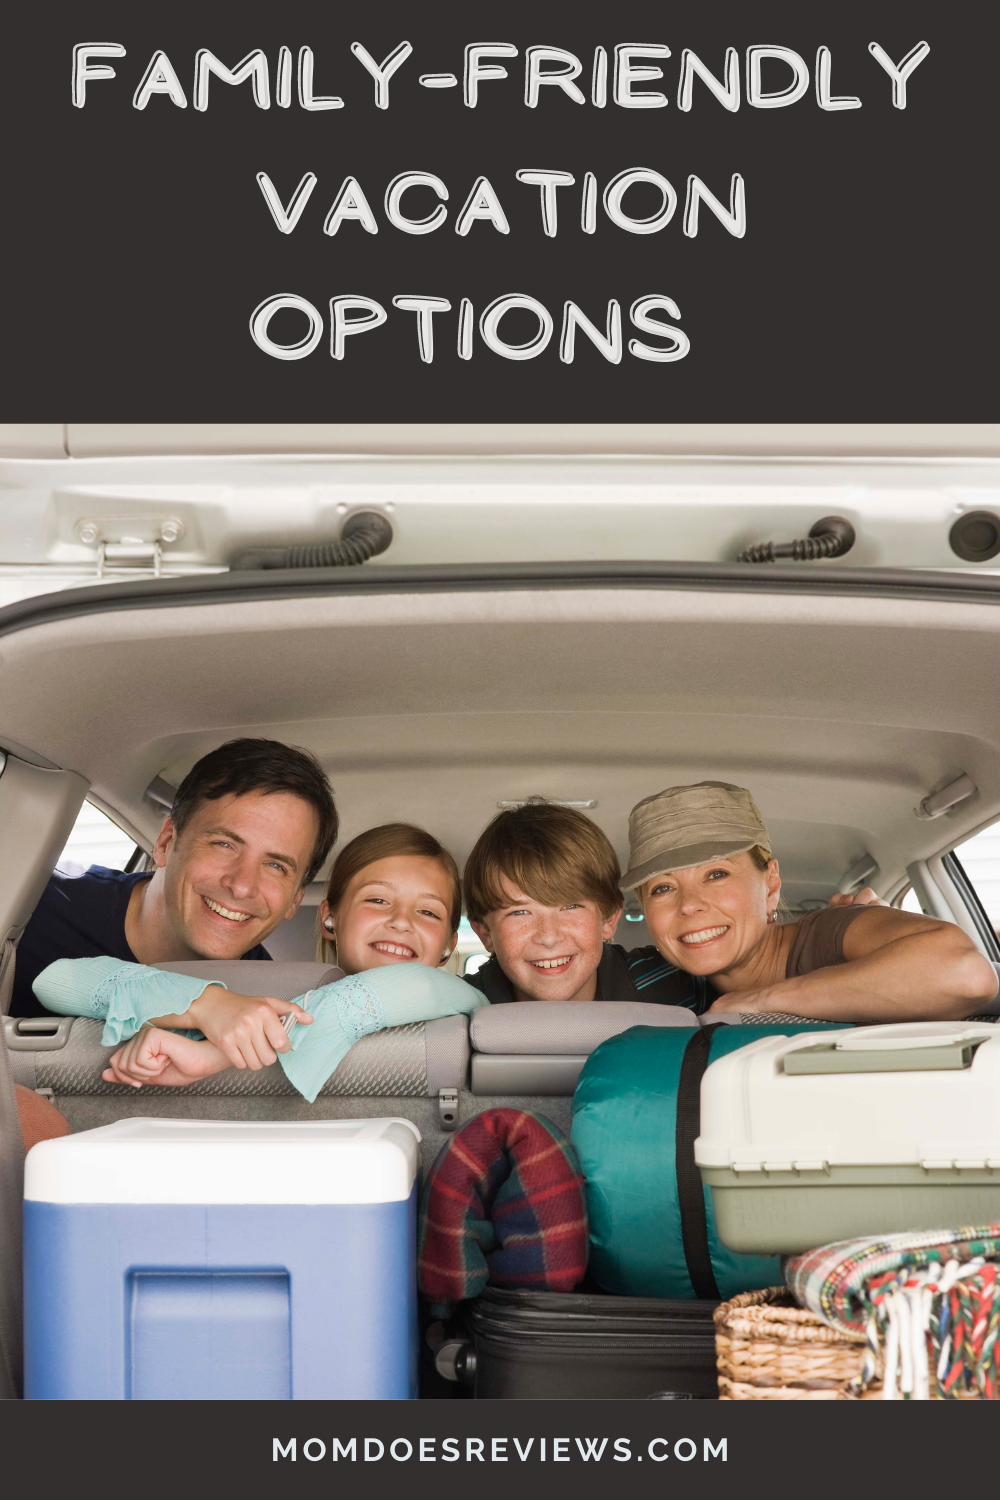 Family-Friendly Vacation Options For Summer 2021